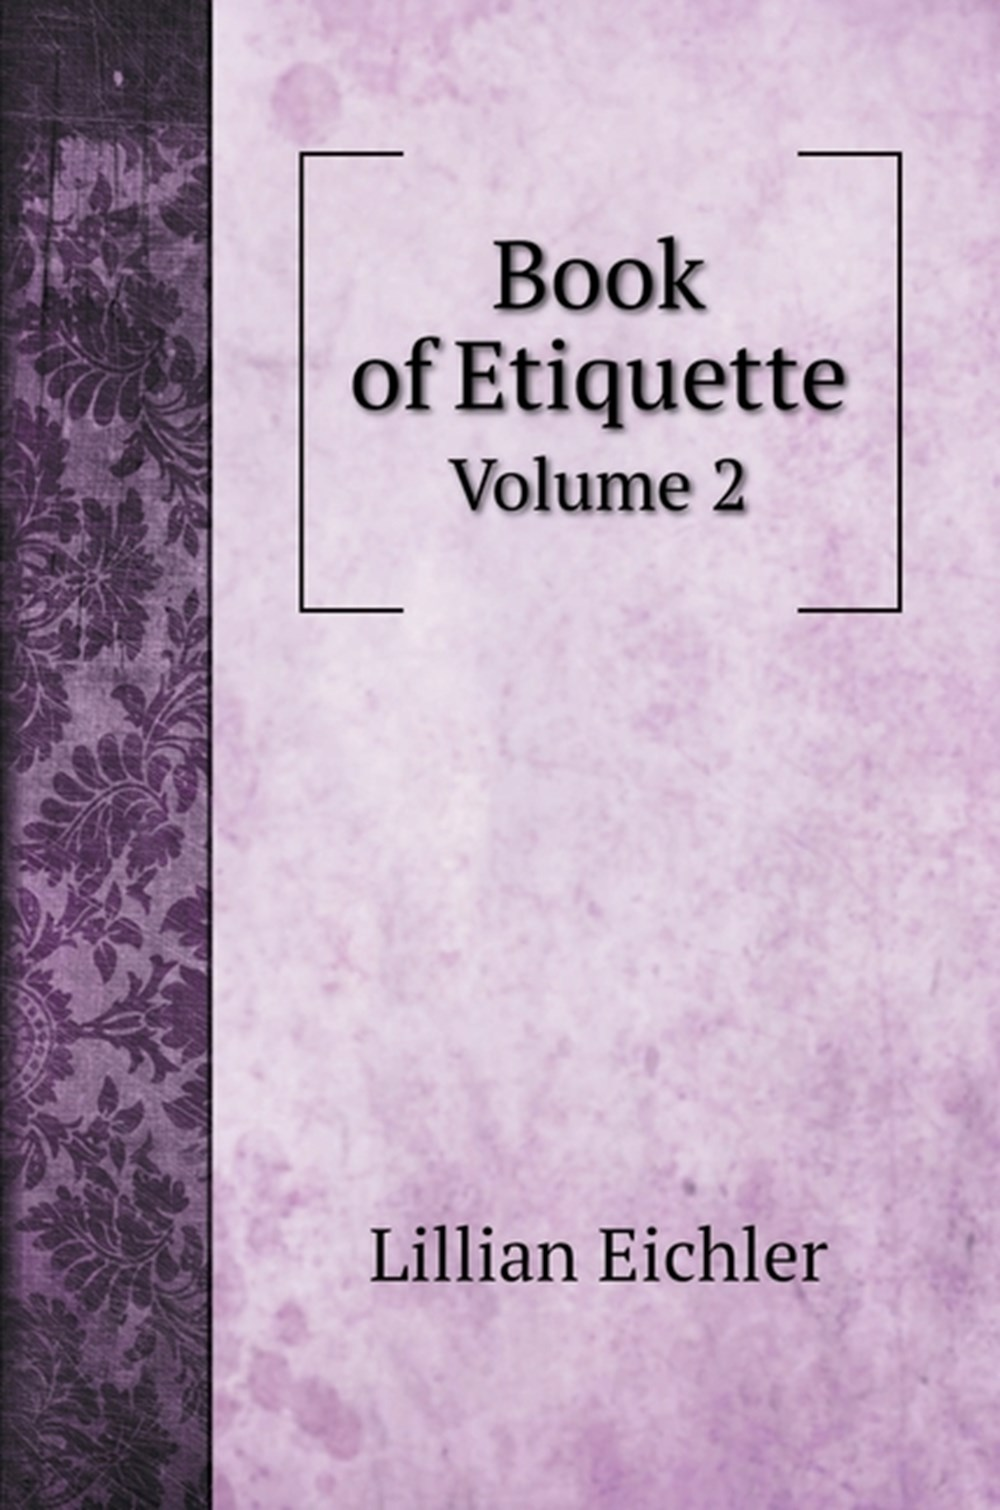 Book of Etiquette Volume 2